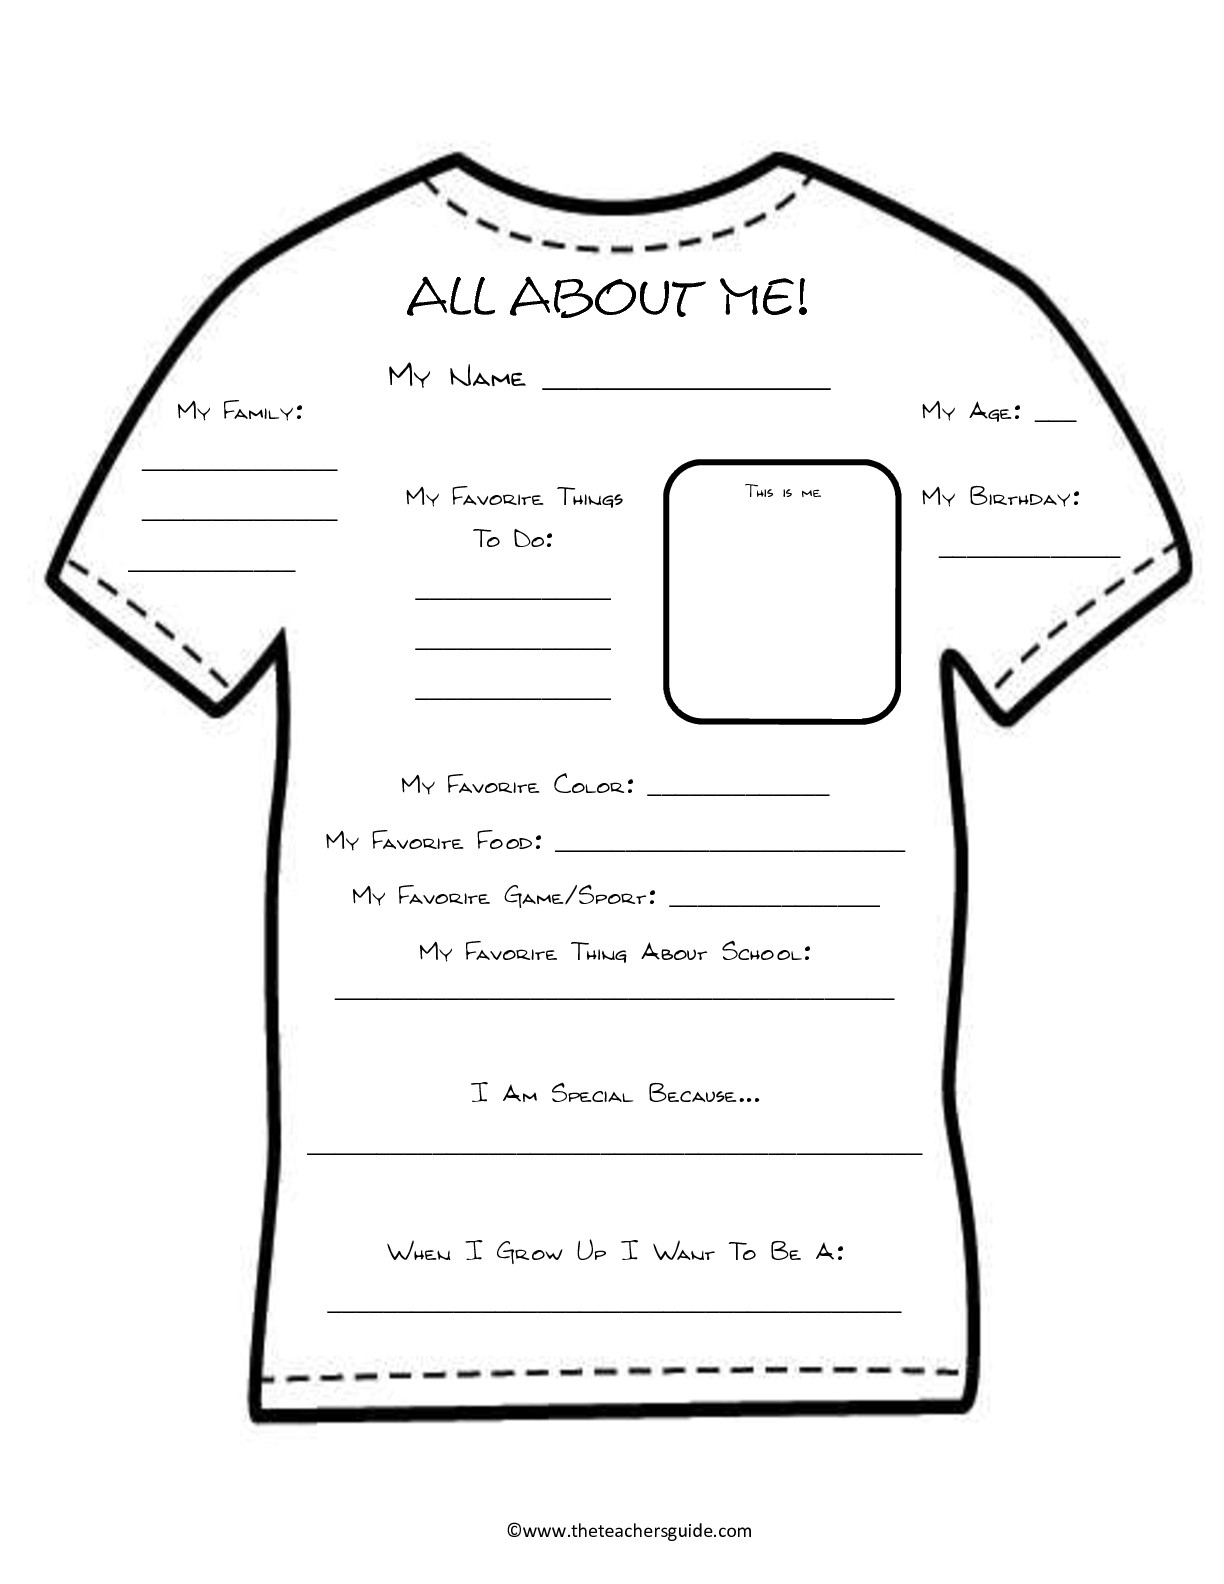 Back To School Printouts From The Teacher's Guide - Free Printable All About Me Poster